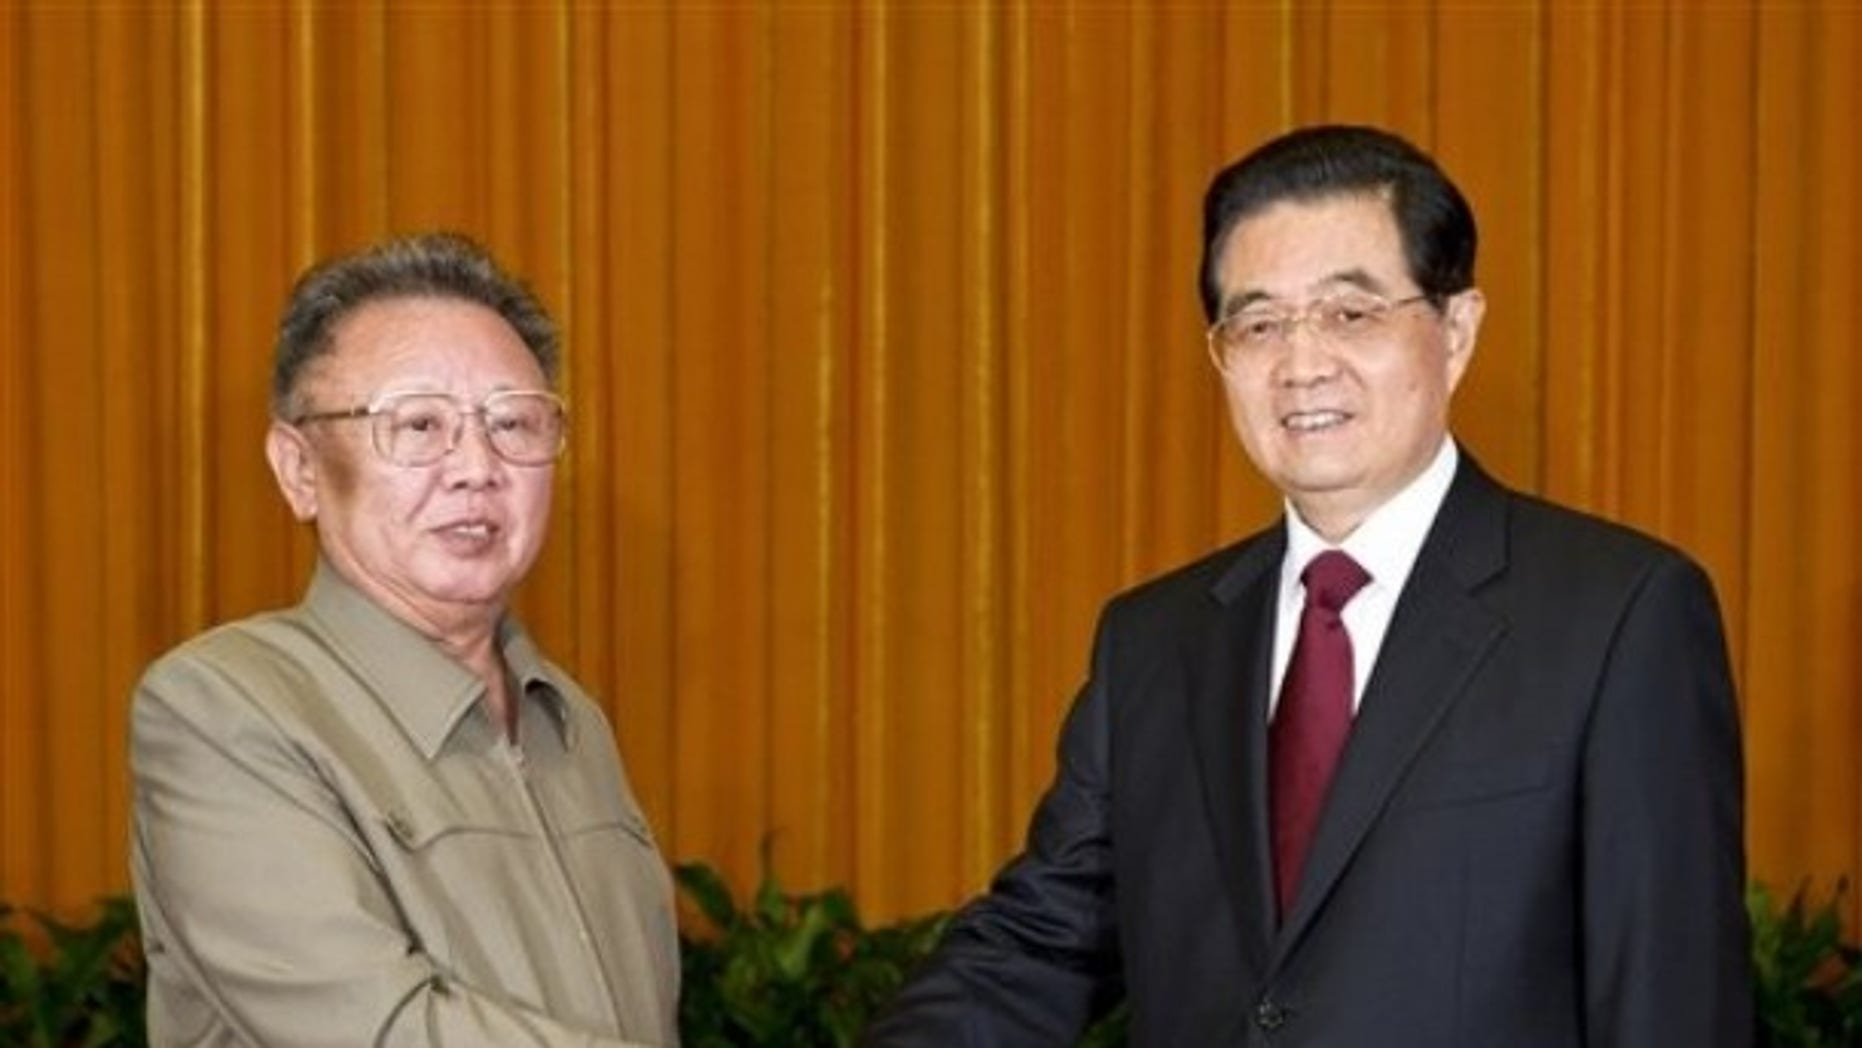 In this photo taken Wednesday, May 25, 2011 released by China's Xinhua news agency, North Korean leader Kim Jong Il, left, shakes hands with Chinese President Hu Jintao during a meeting in Beijing.